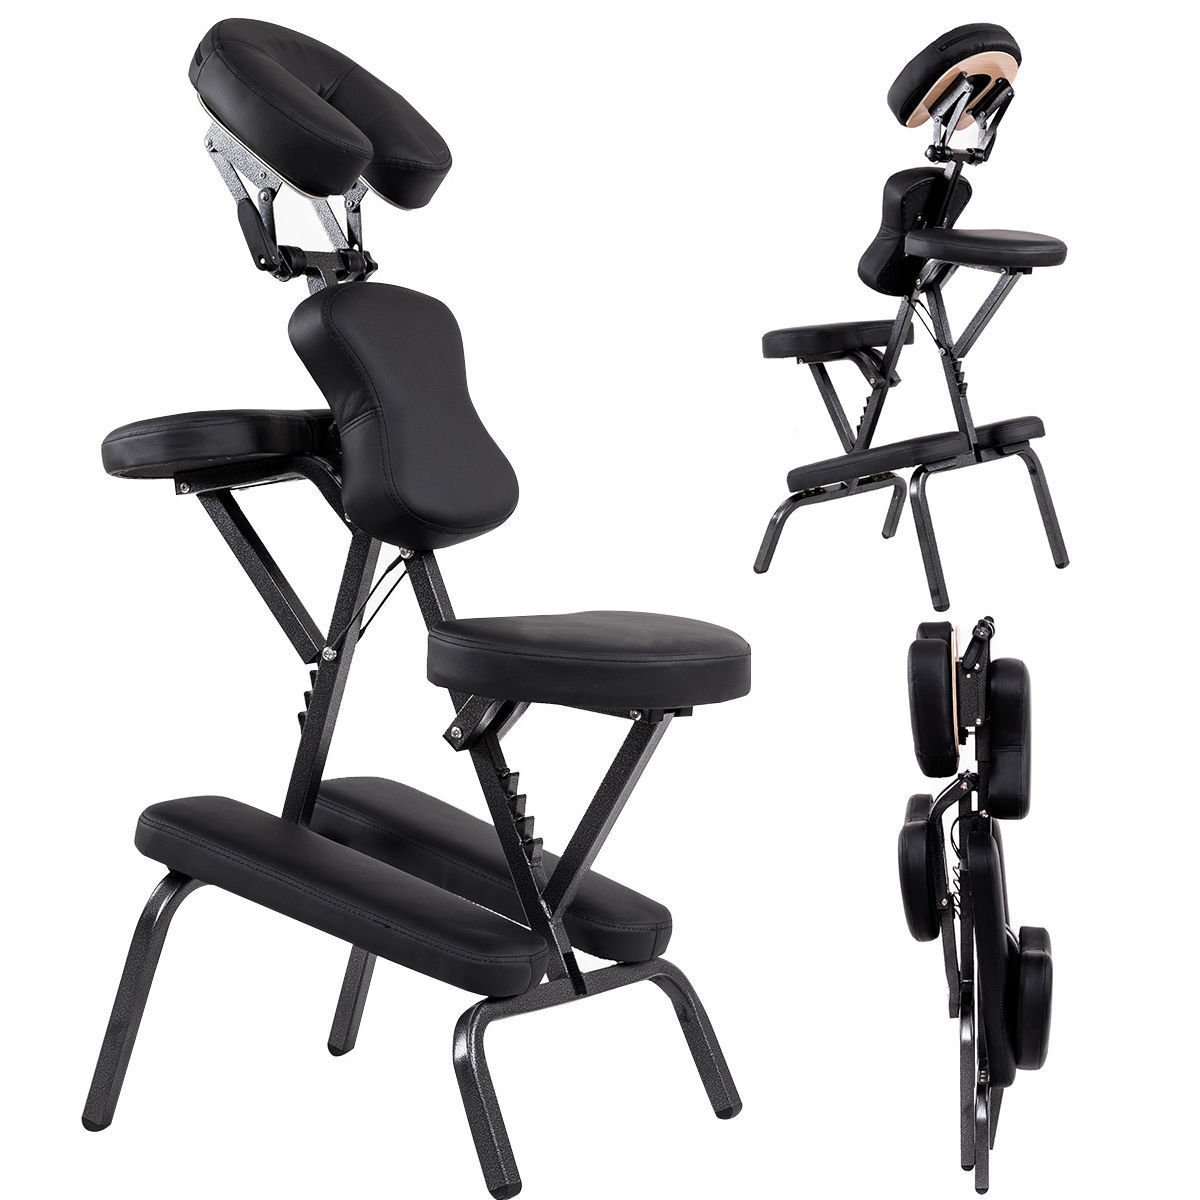 Portable PU Leather Pad Travel Massage Tattoo Spa Chair W/Carrying Bag Black by Allblessings (Image #1)